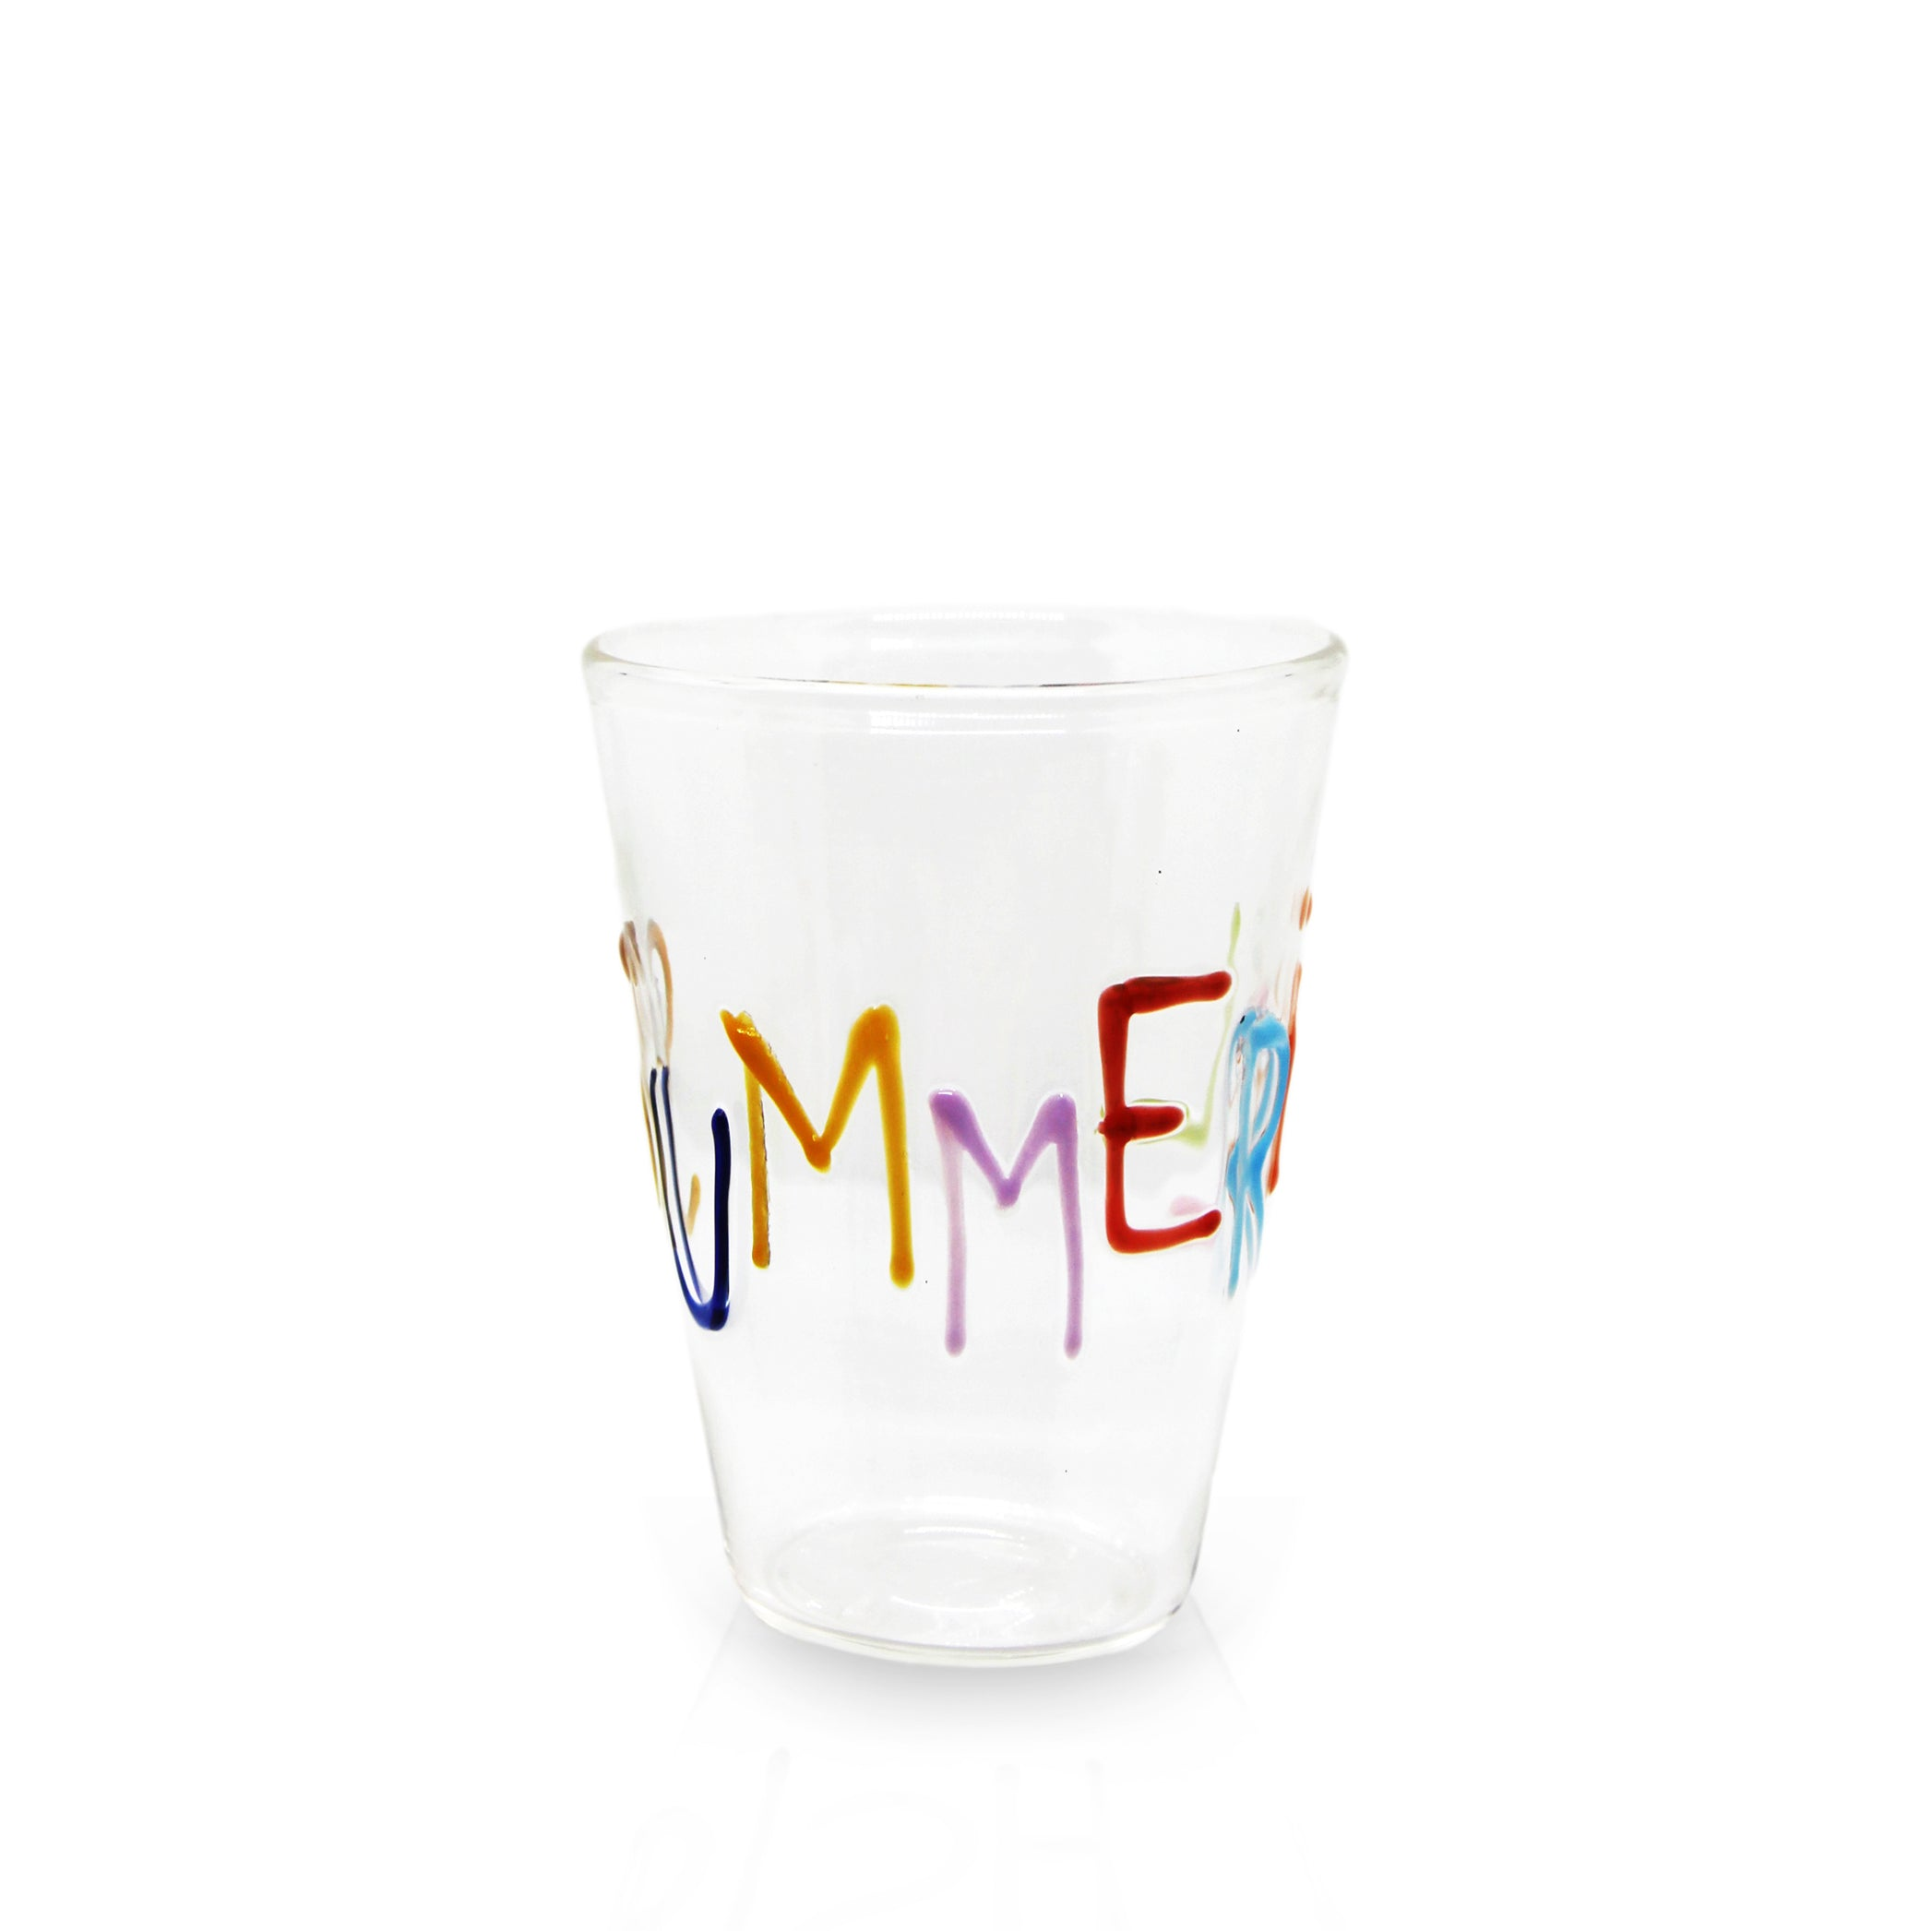 Bespoke Handblown Glass Word Tumbler